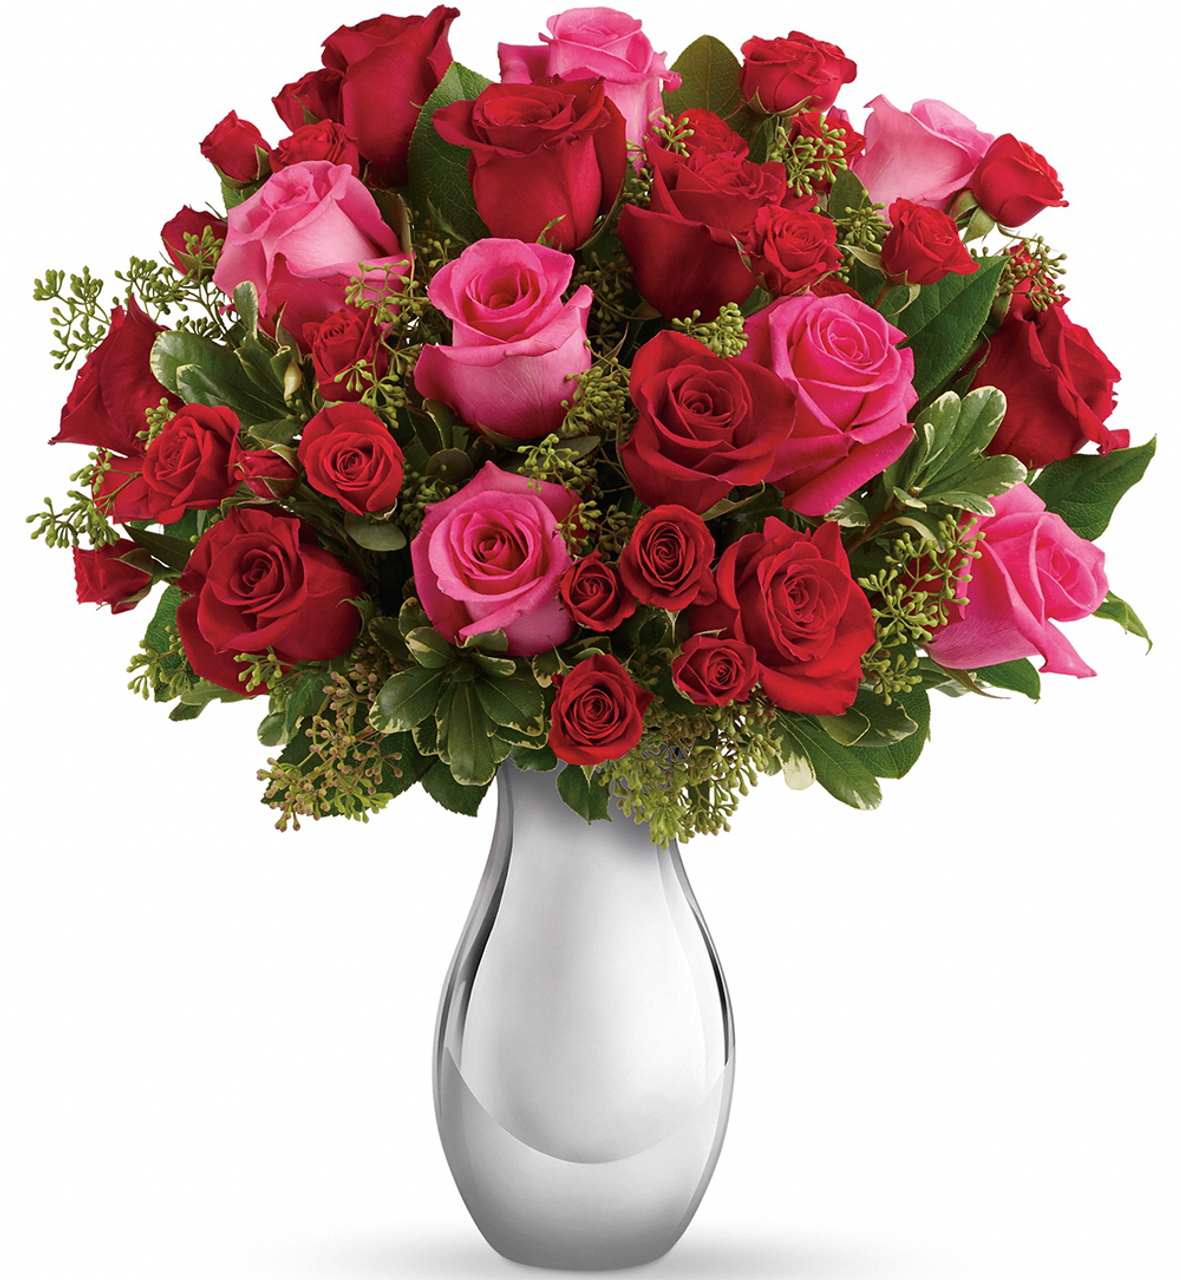 True Romance Autumn Bouquet 8 Red And 8 Pink Roses Salvy The Florist